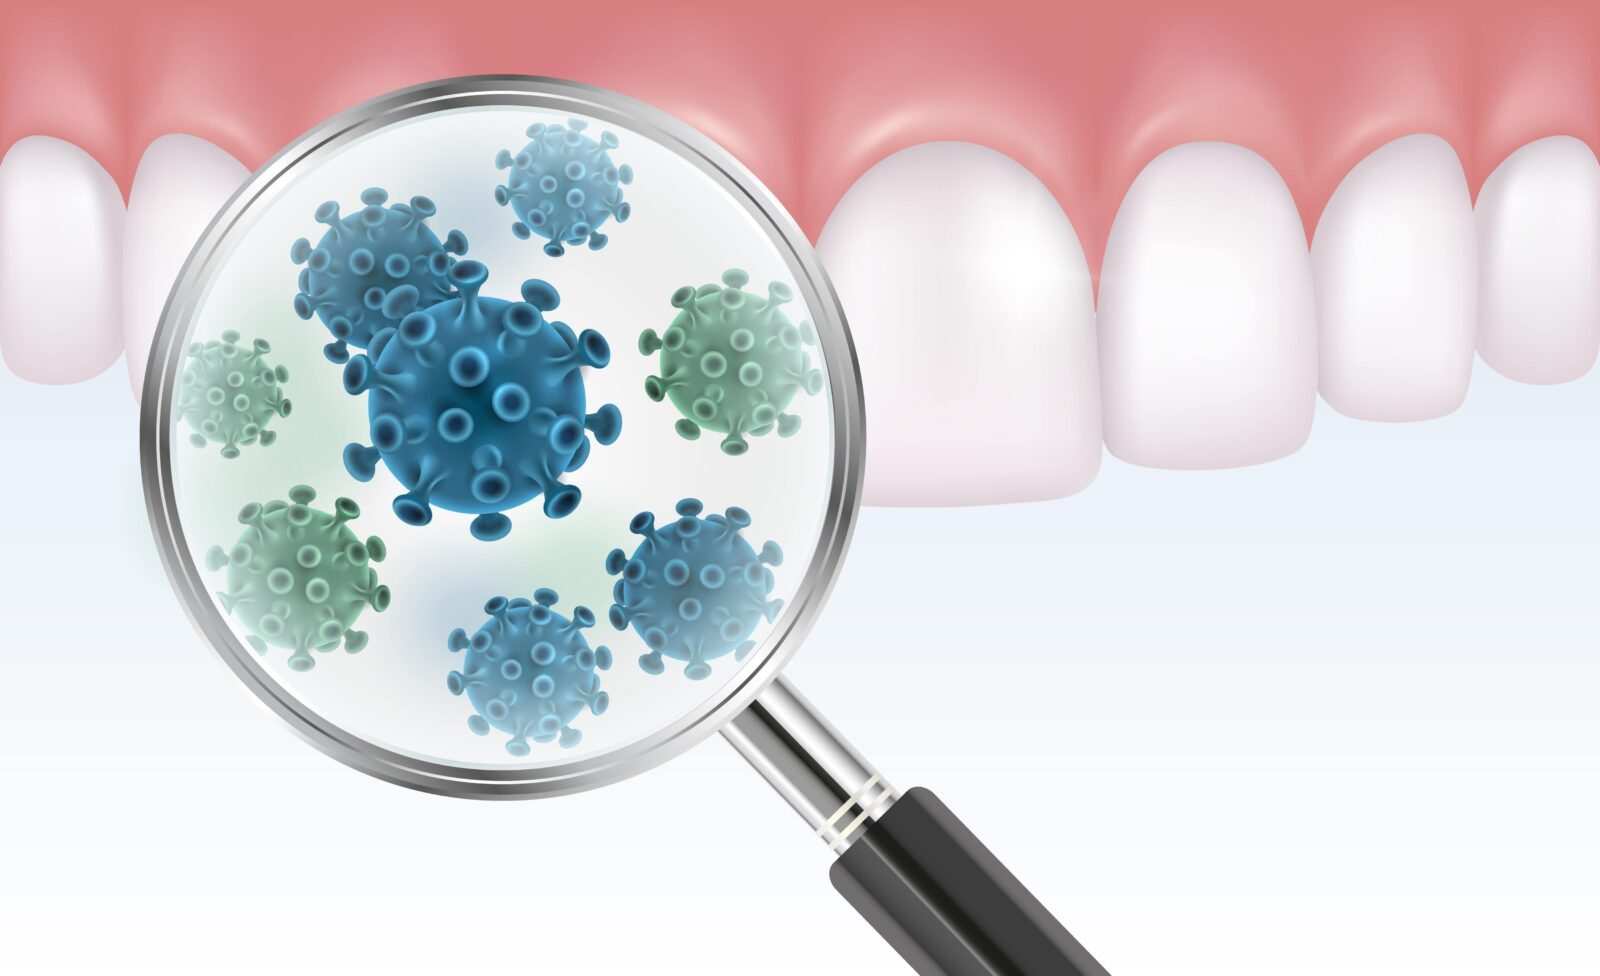 magnifying glass showing bacteria on teeth